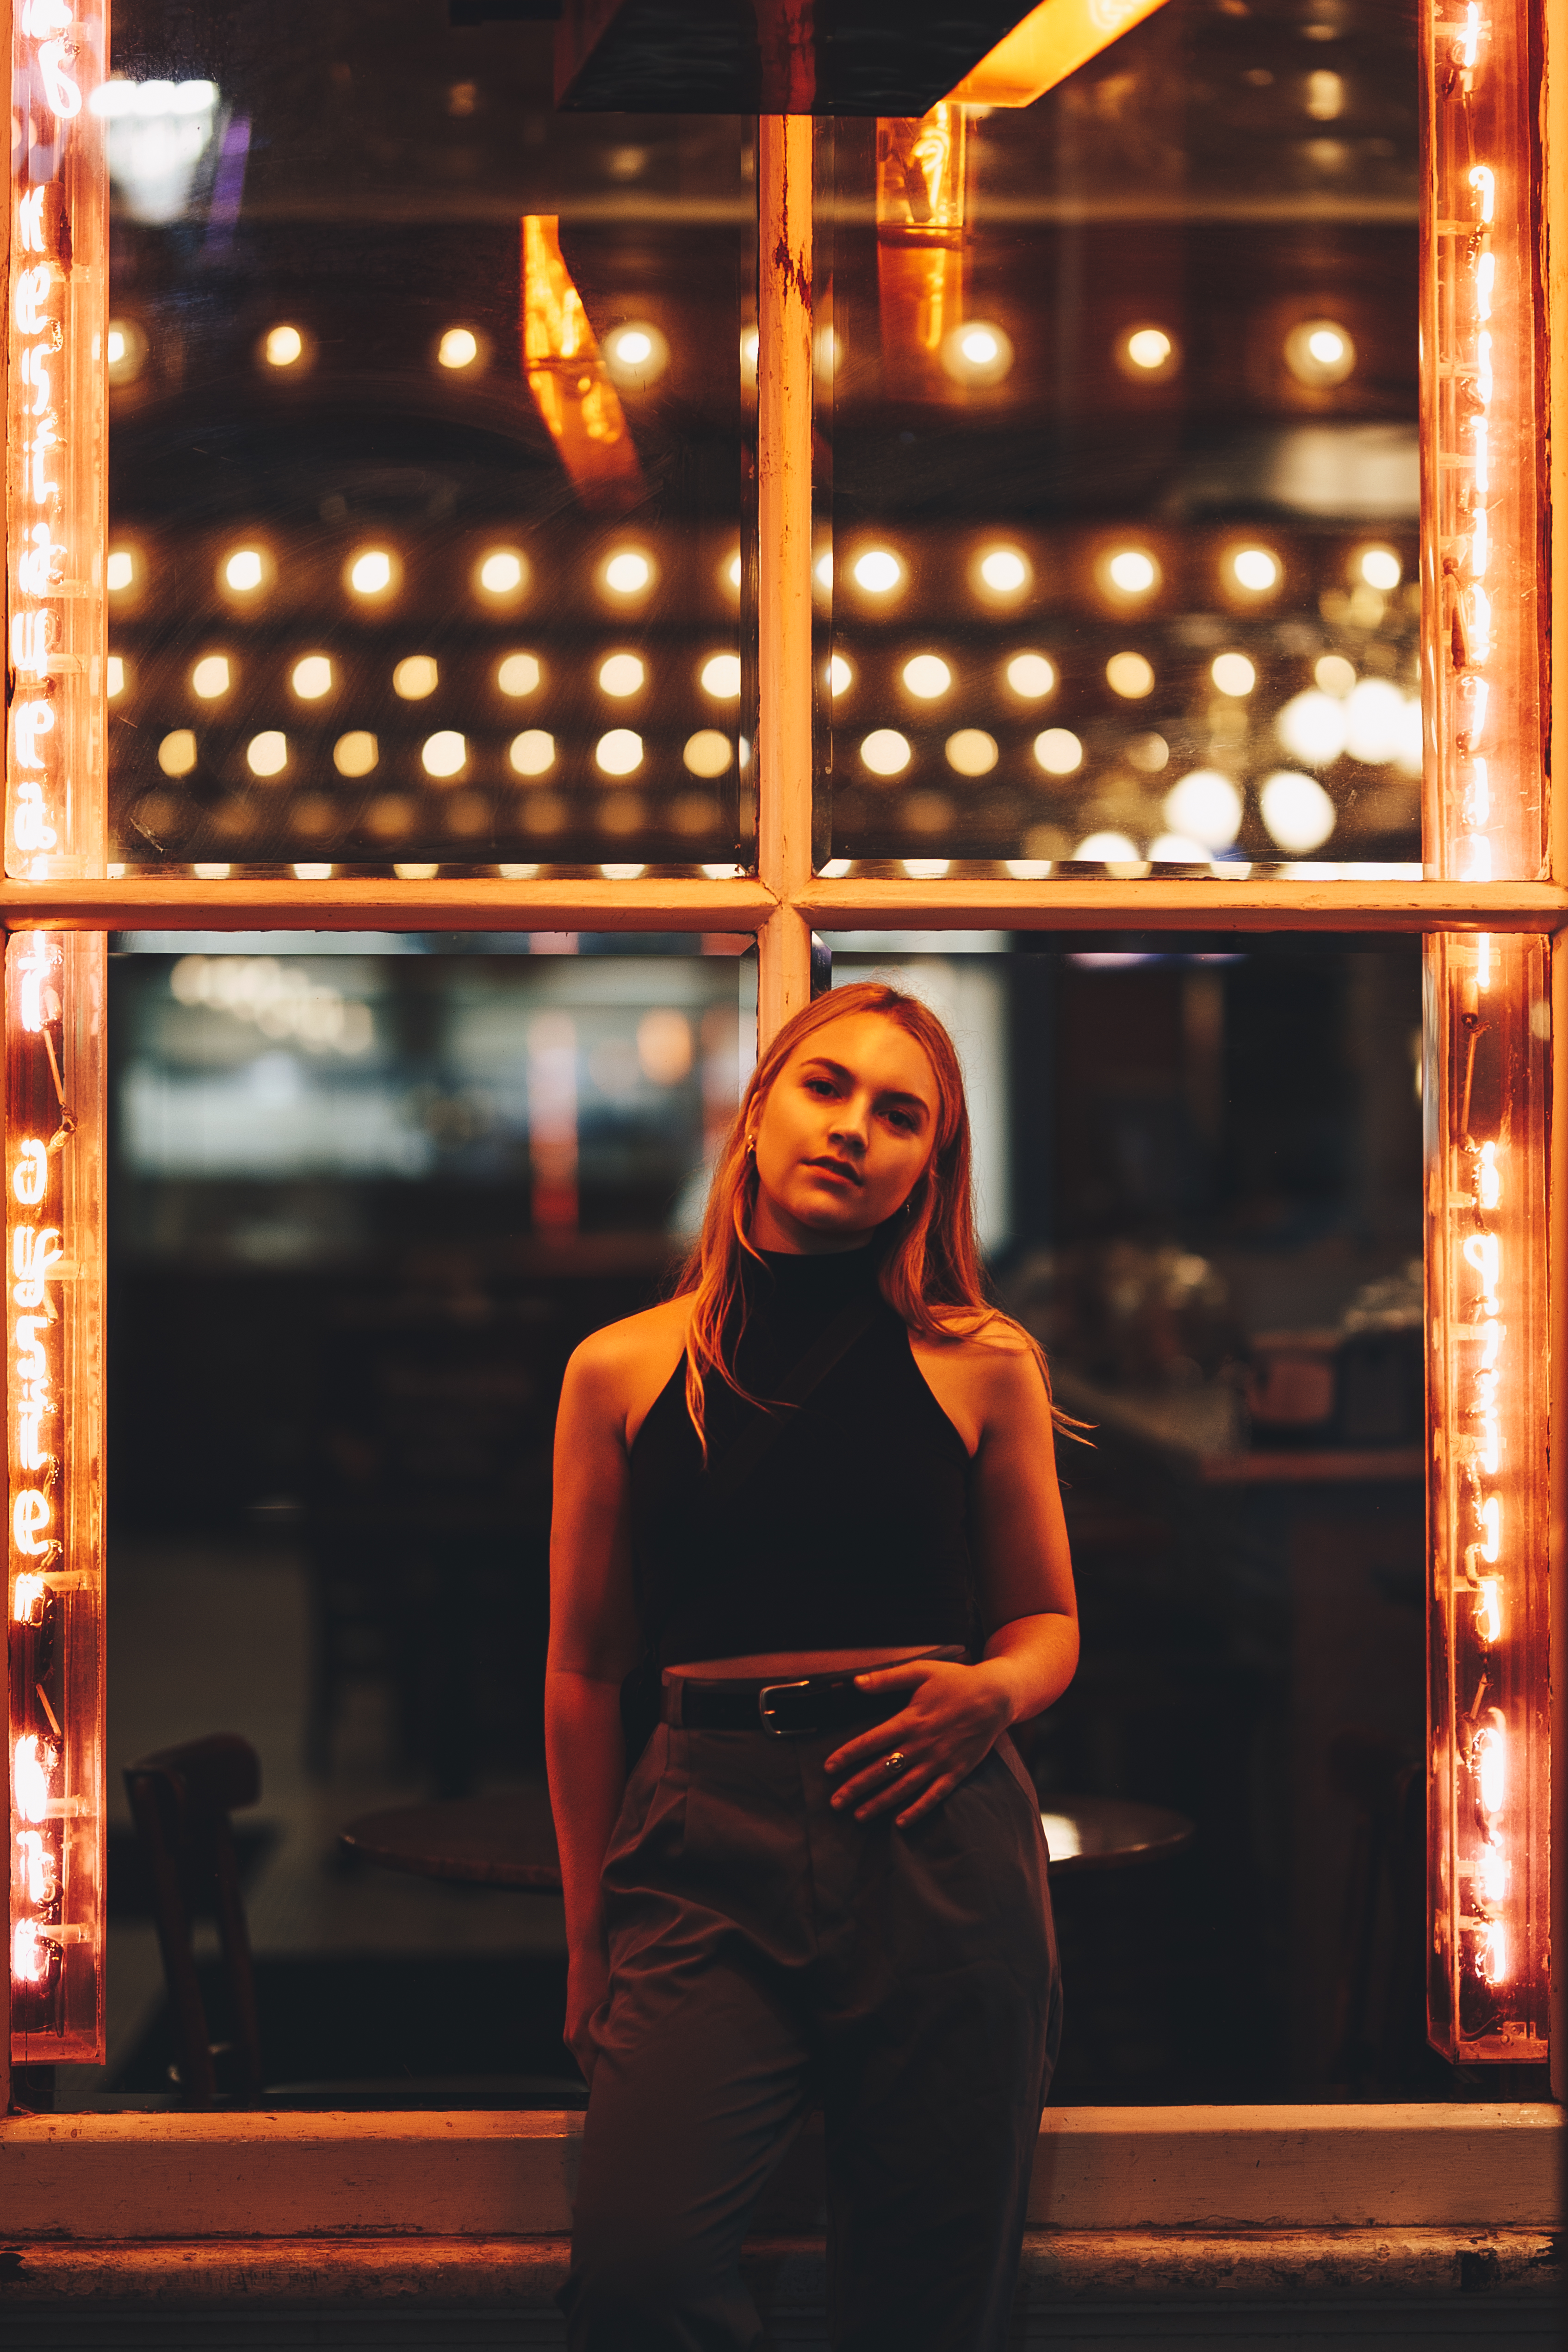 Wing_Hei_Emily_Cheng_Assignment_3_Travel_Photography_New_Orleans_Neon_Lights-9